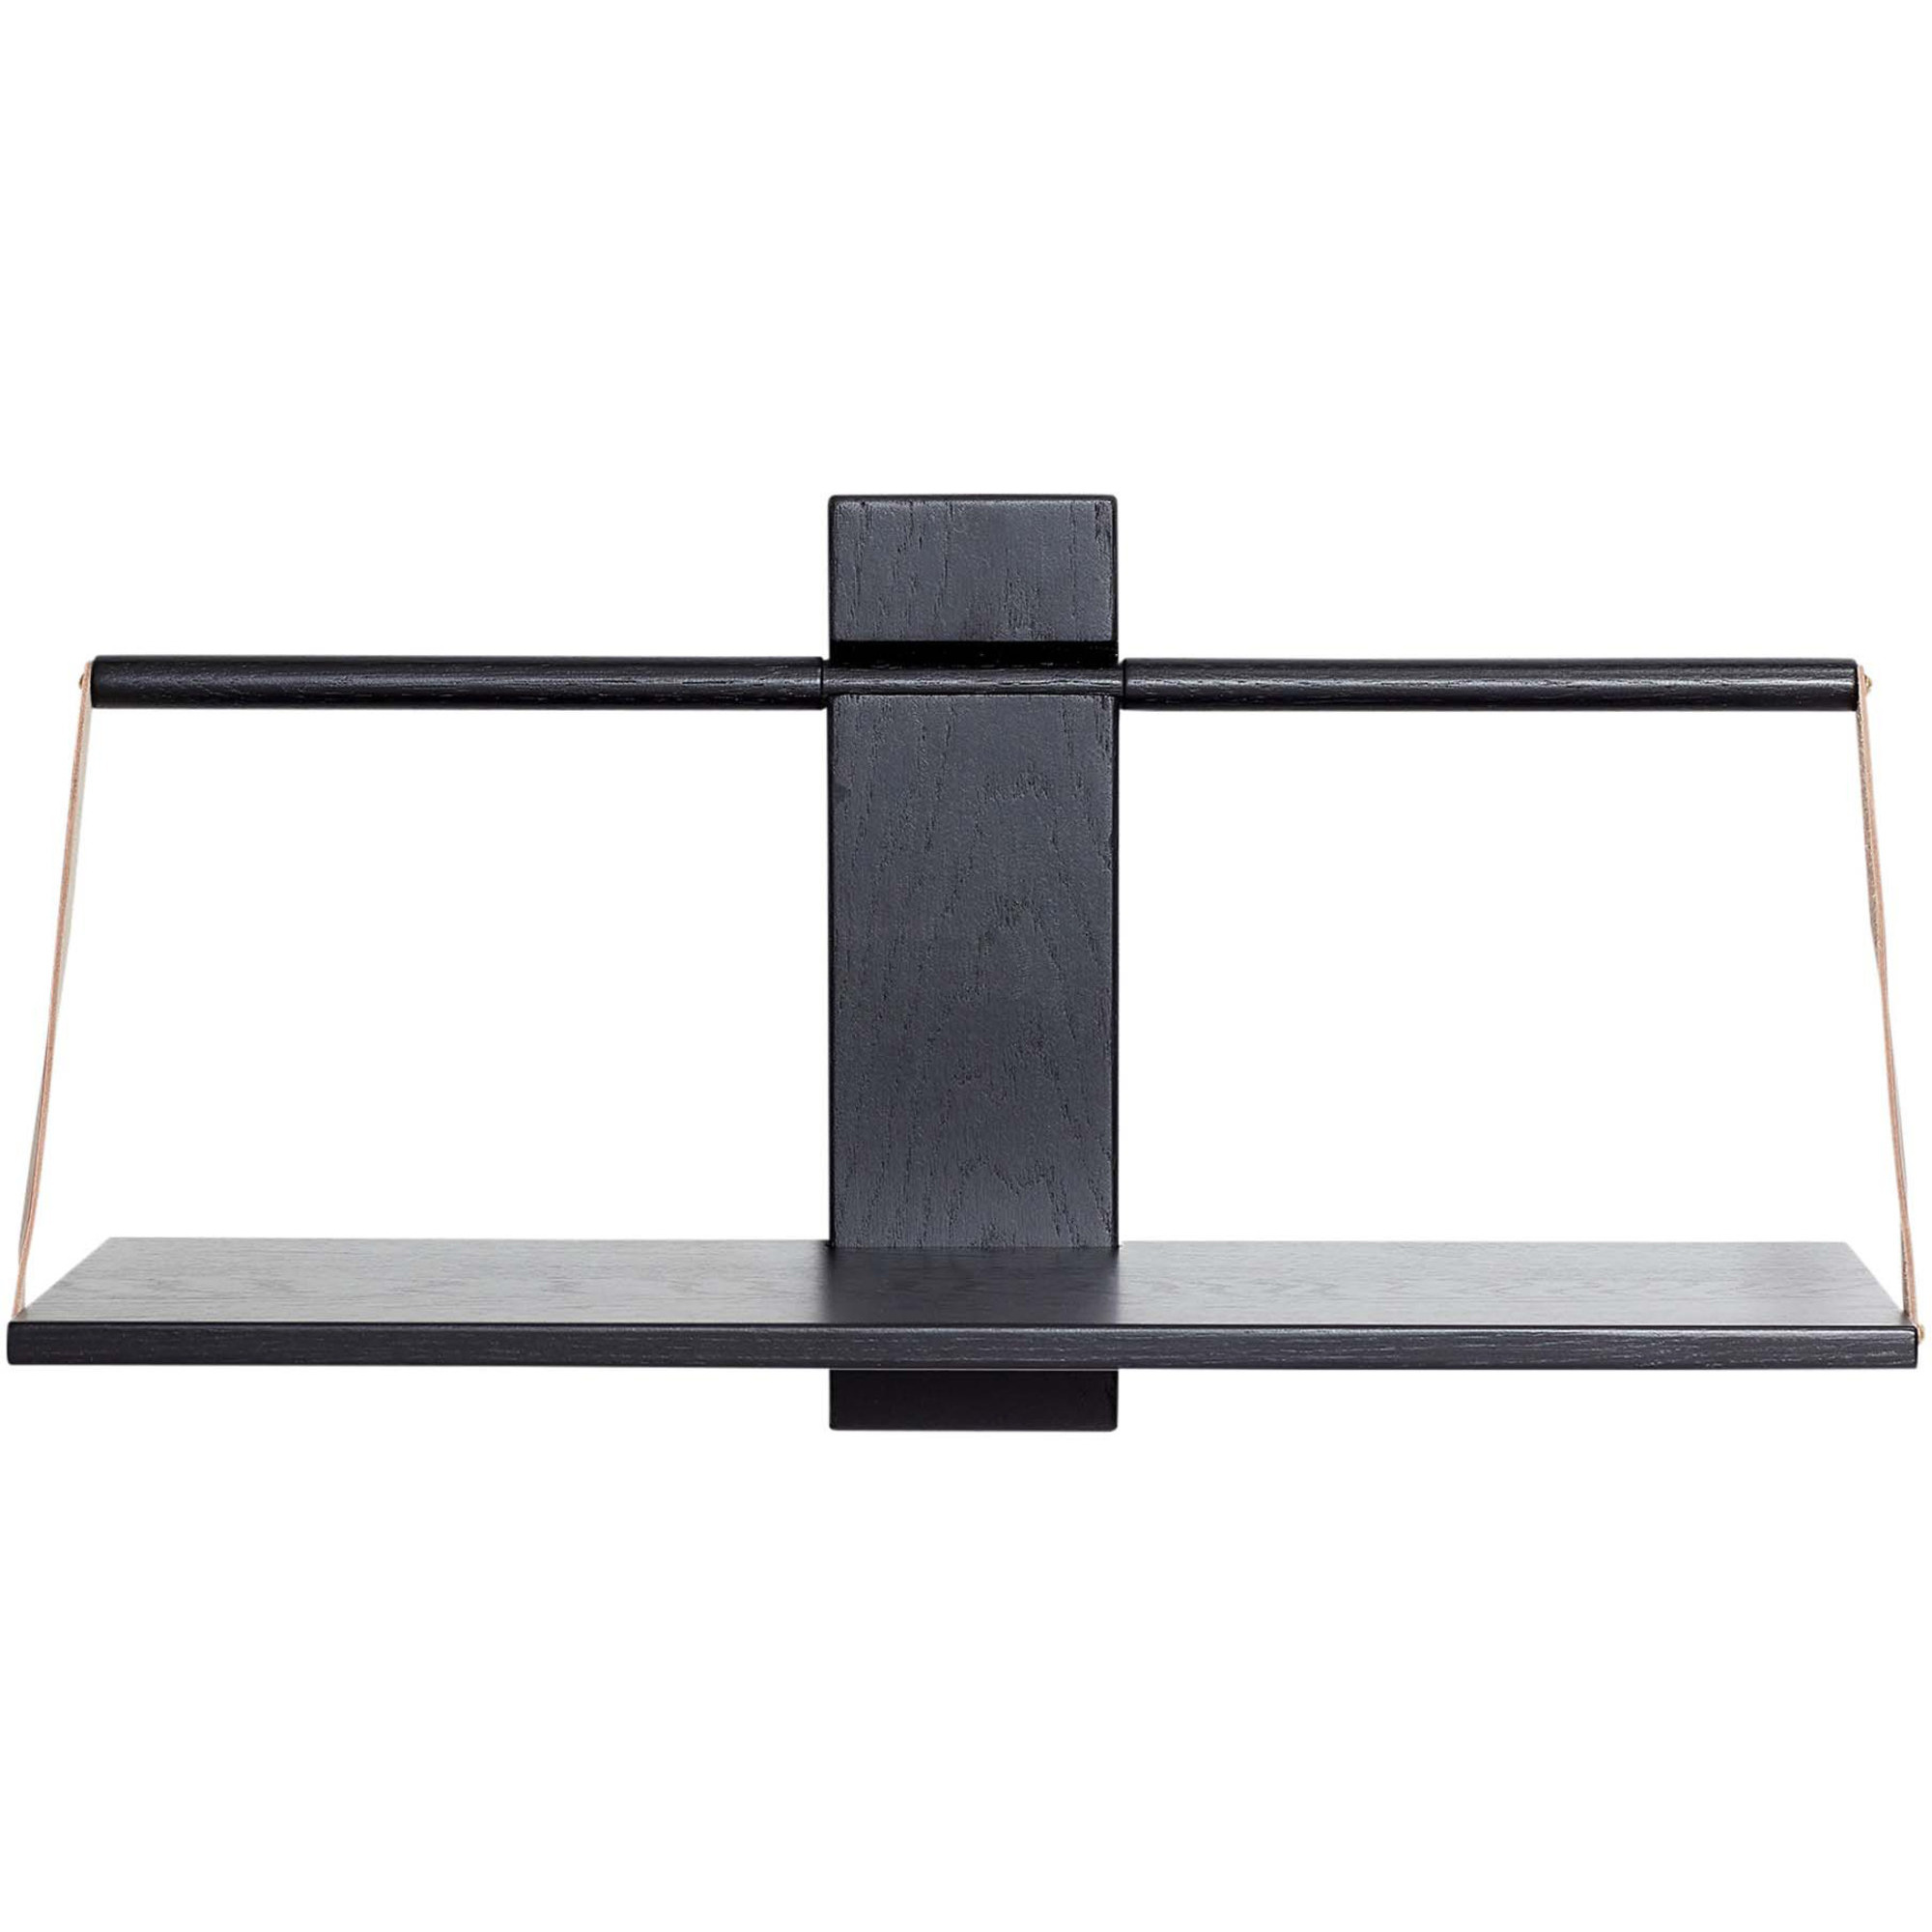 Andersen Furniture Wood wall Shelf 60 x 25 x 32 cm Large Black